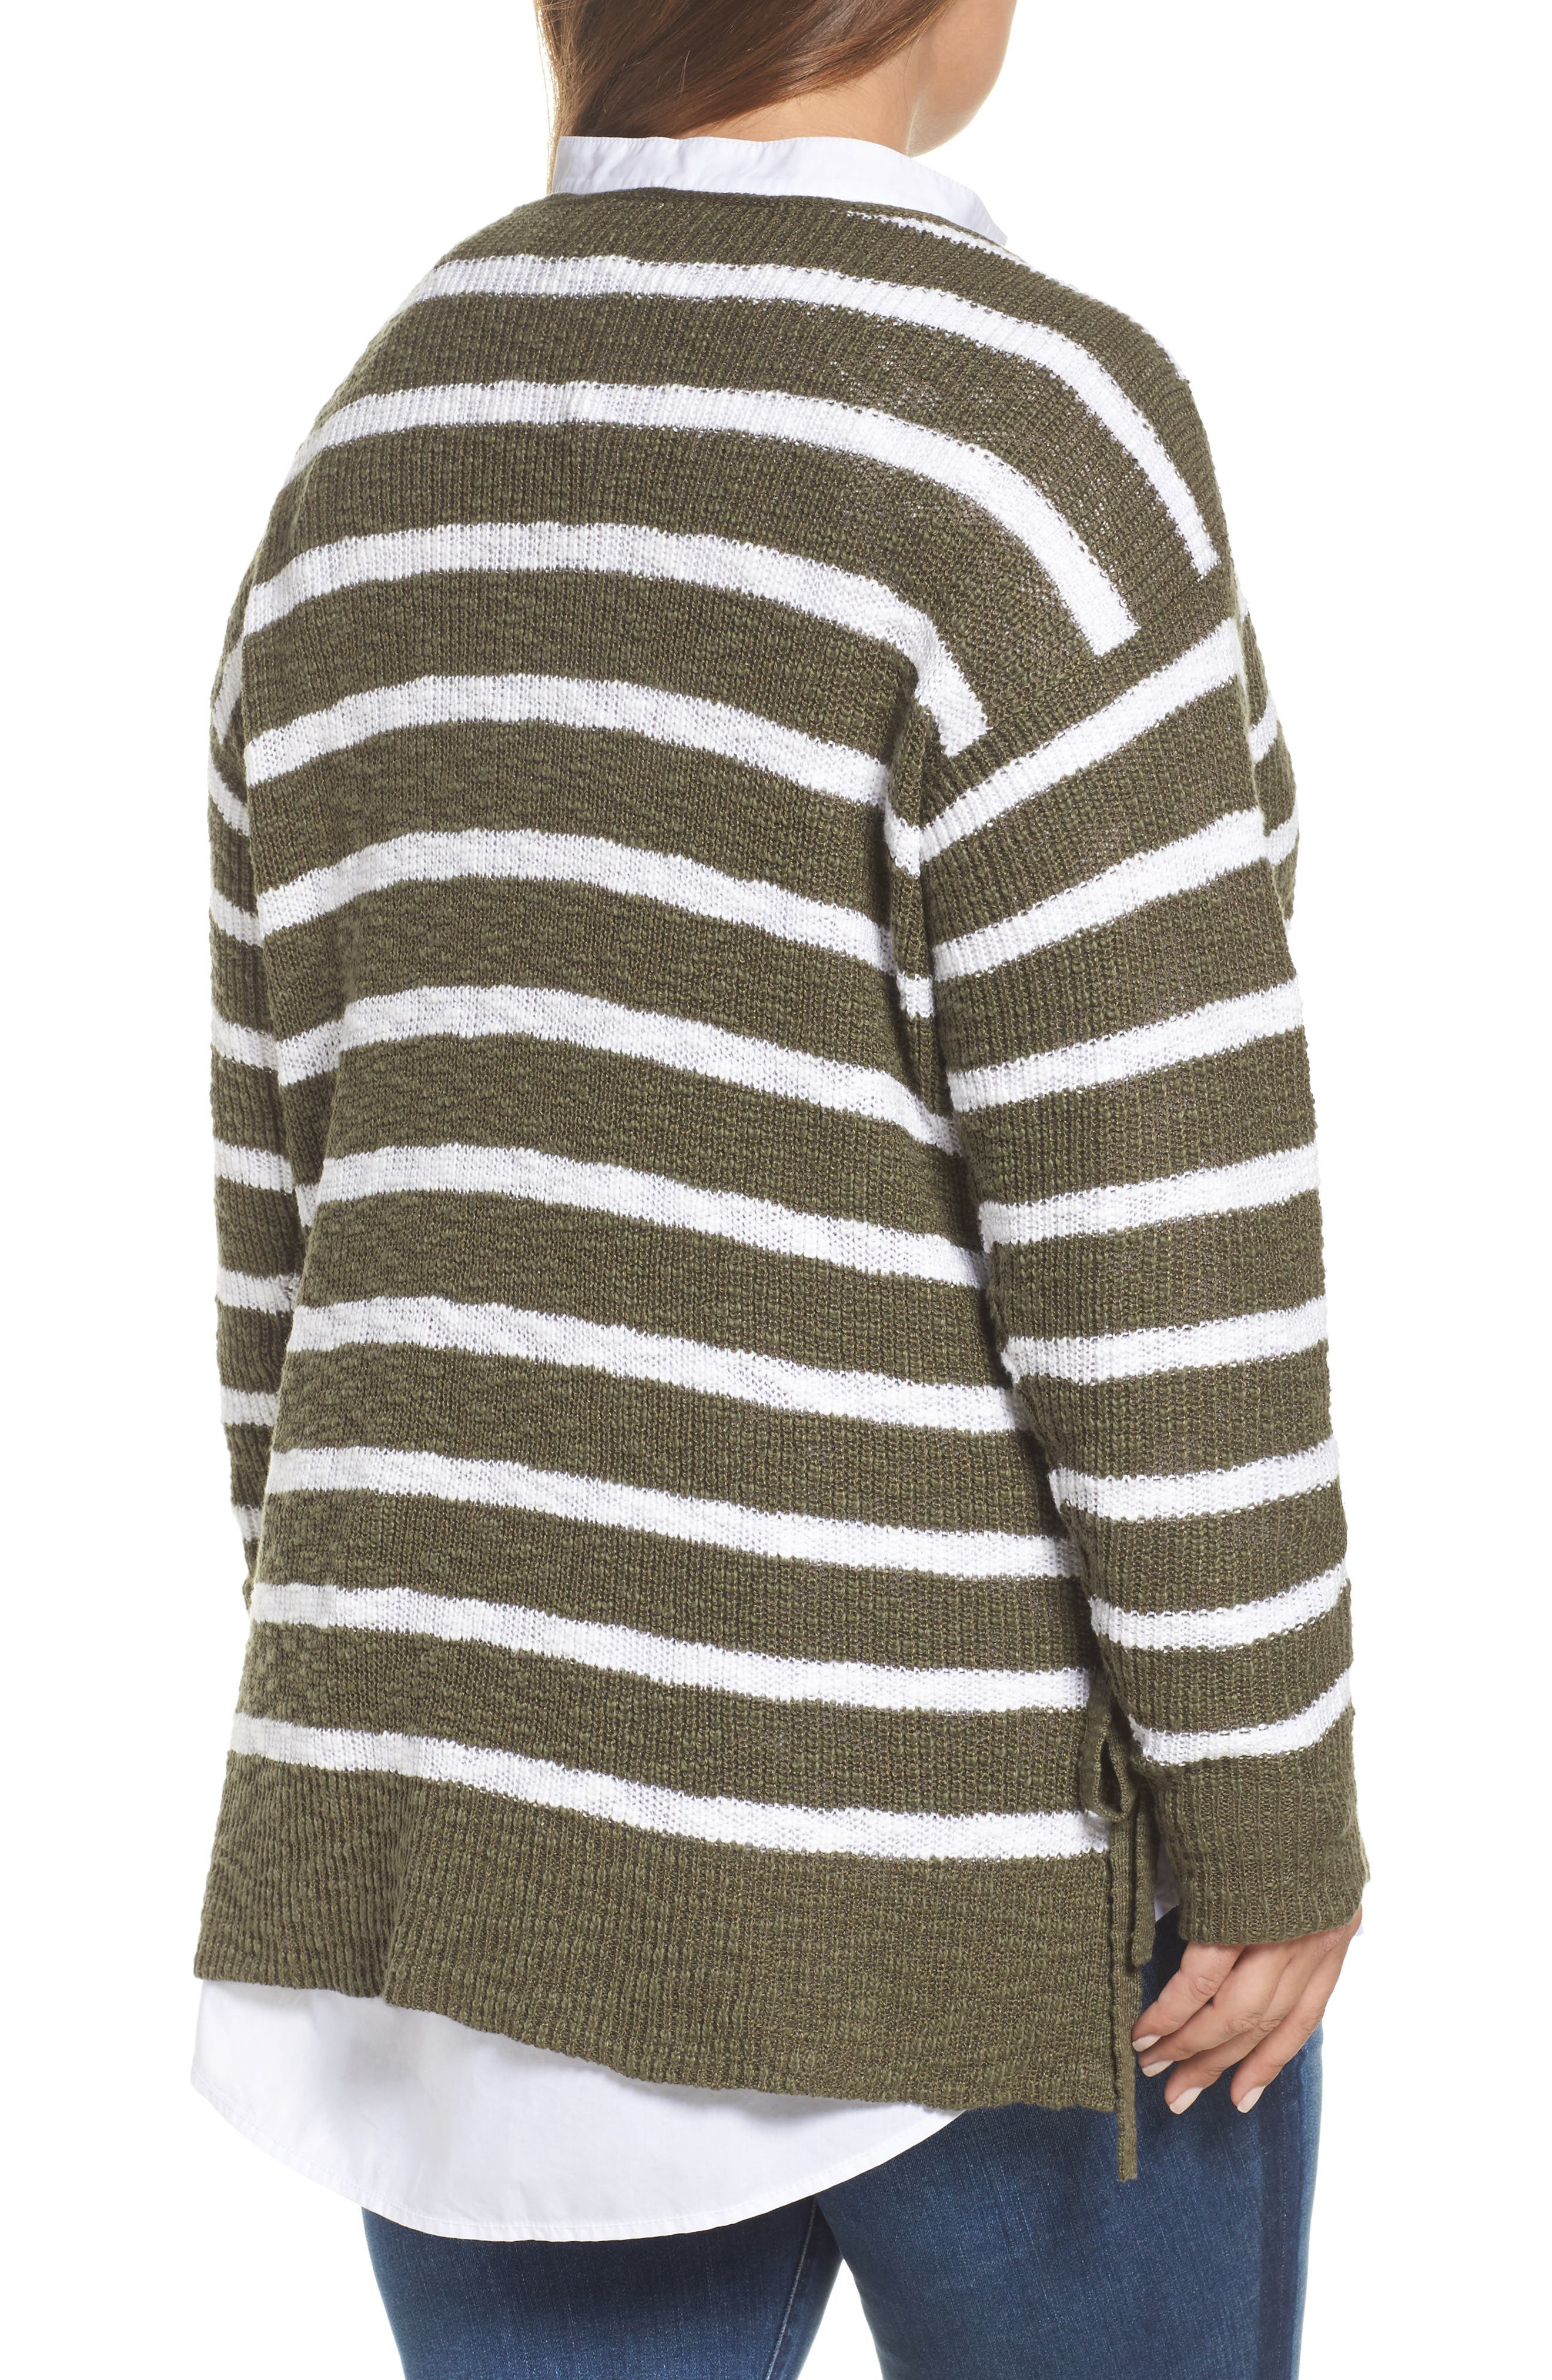 Tunic Sweater with Side Ties,                             Alternate thumbnail 2, color,                             Olive- White Stripe